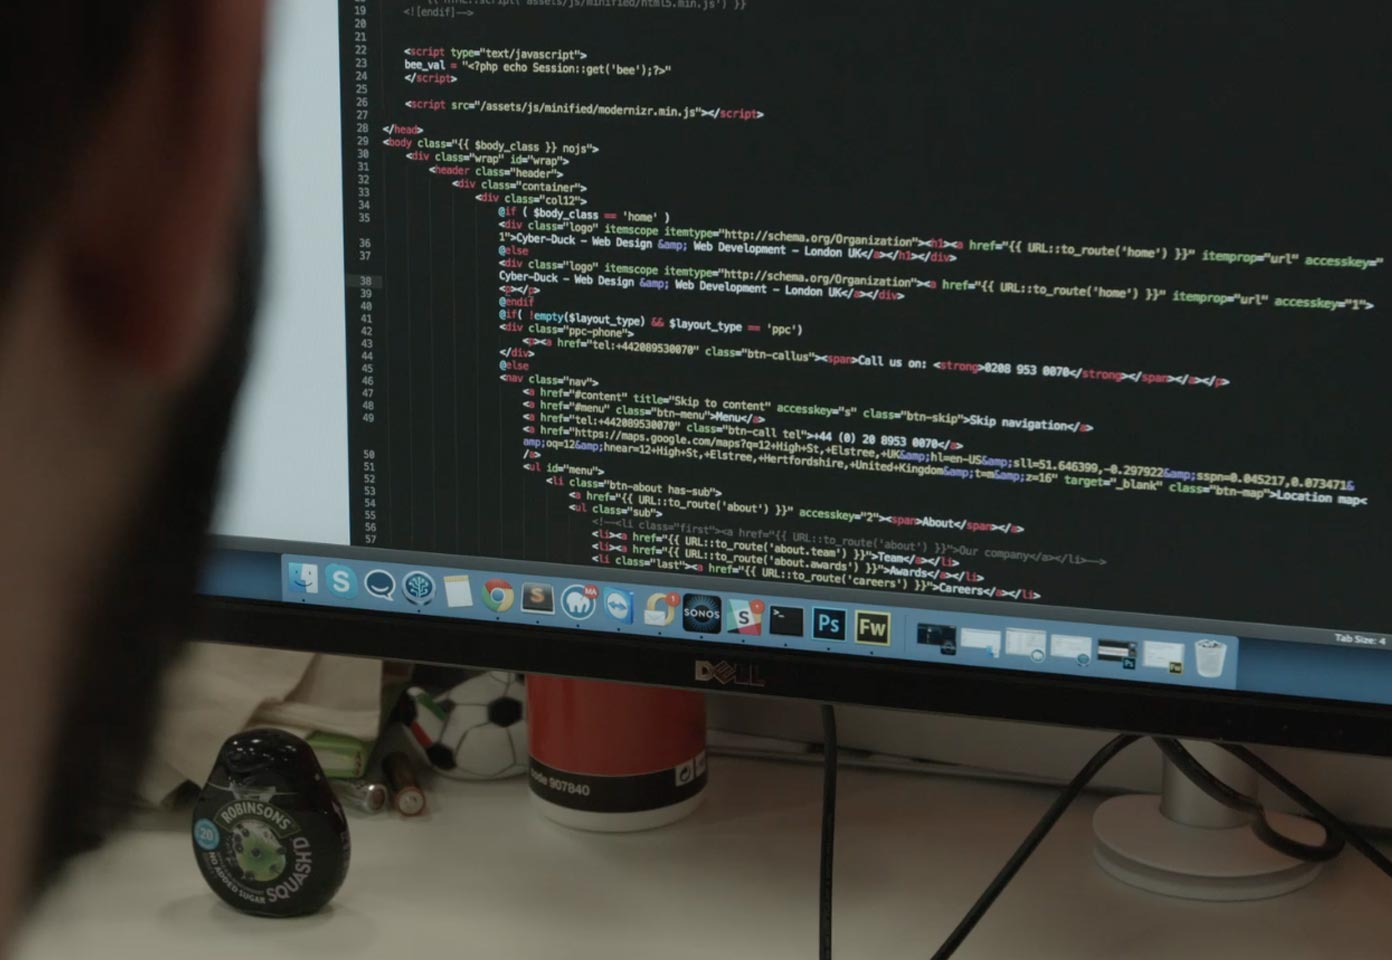 Cyber-Duck web developer reviewing code on desktop